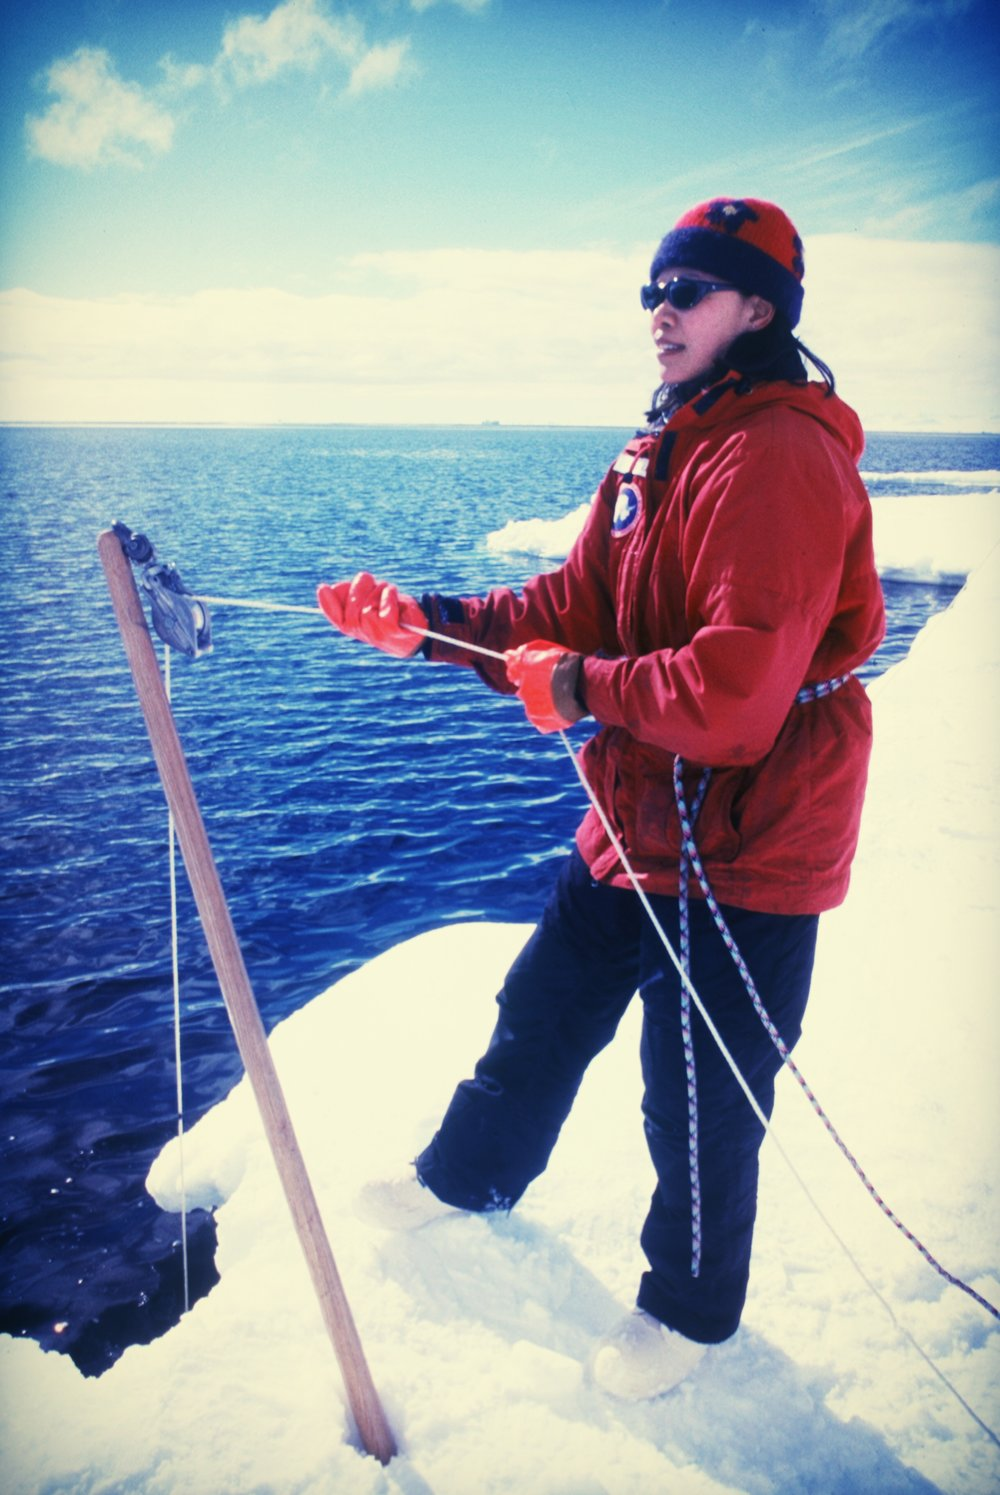 Collecting water from the sea ice edge - Ross Island, Antarctic 2001